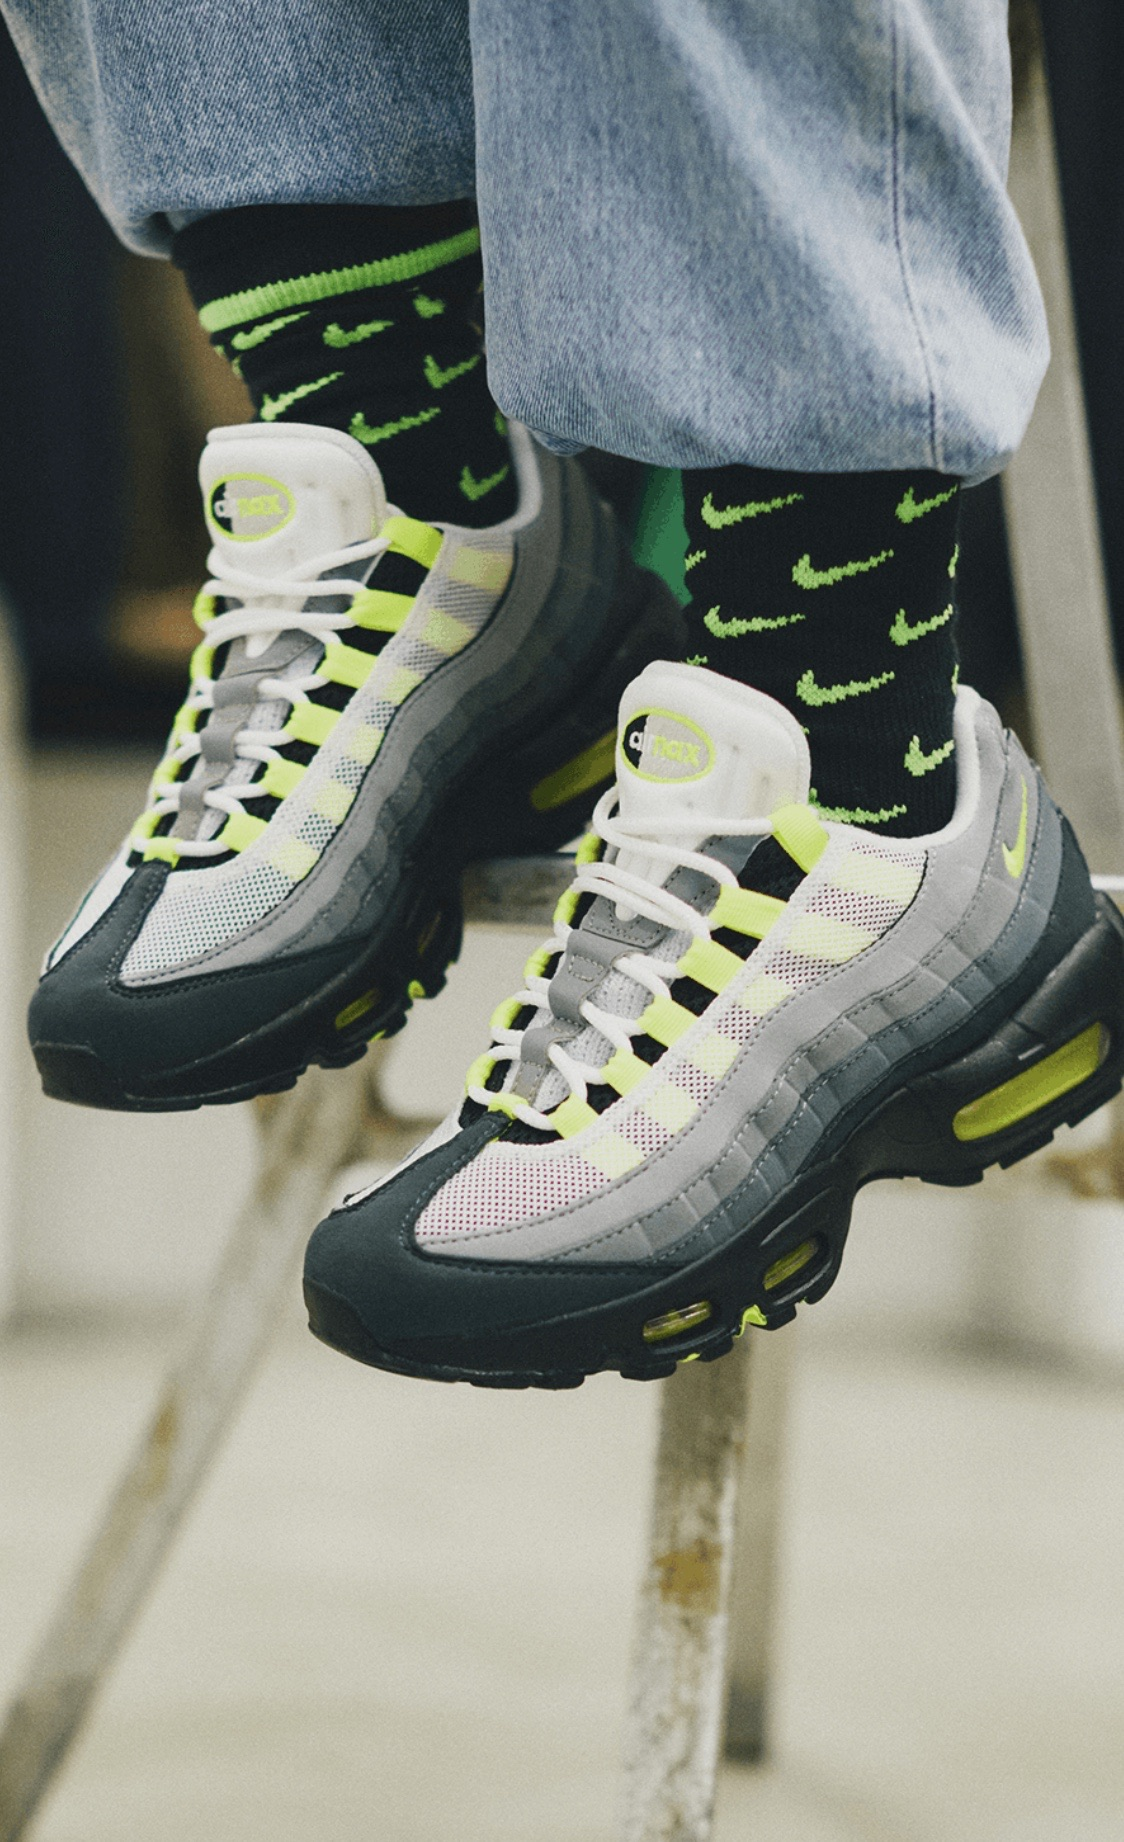 nike-air-max-95-og-neon-2020-ct1689-001-release-20201217-snap